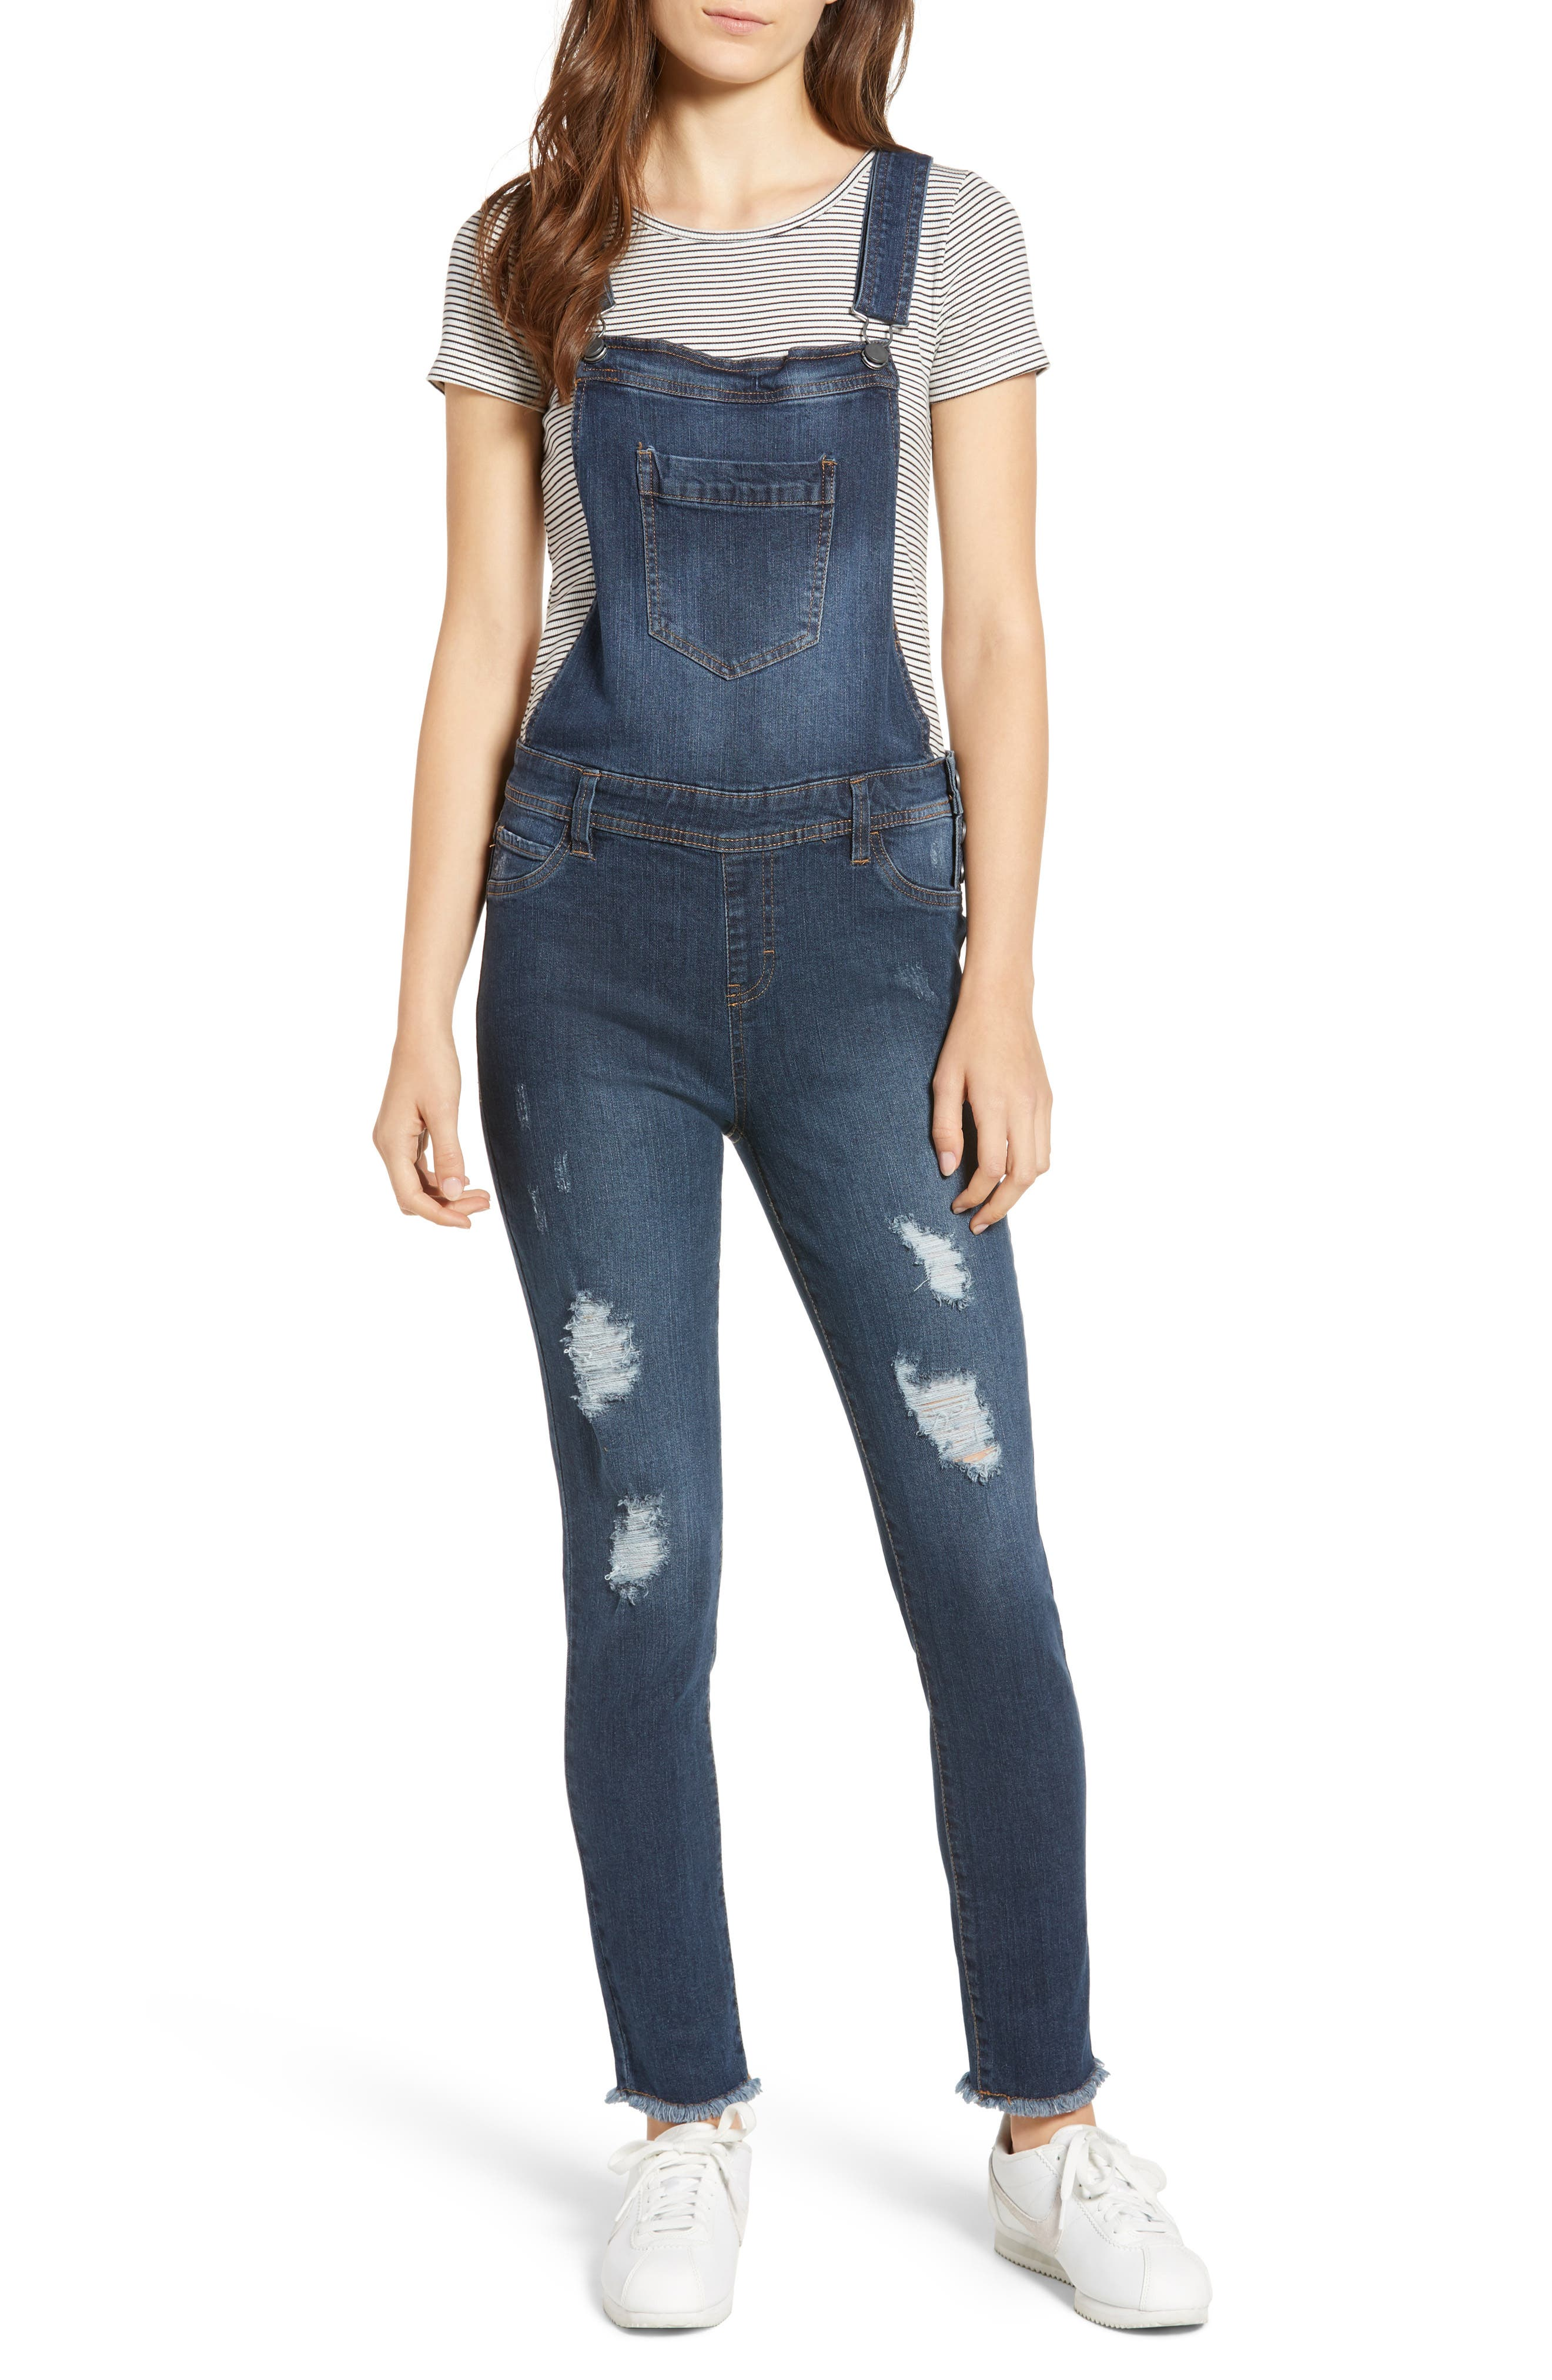 TINSEL Ripped Skinny Overalls, Main, color, 400